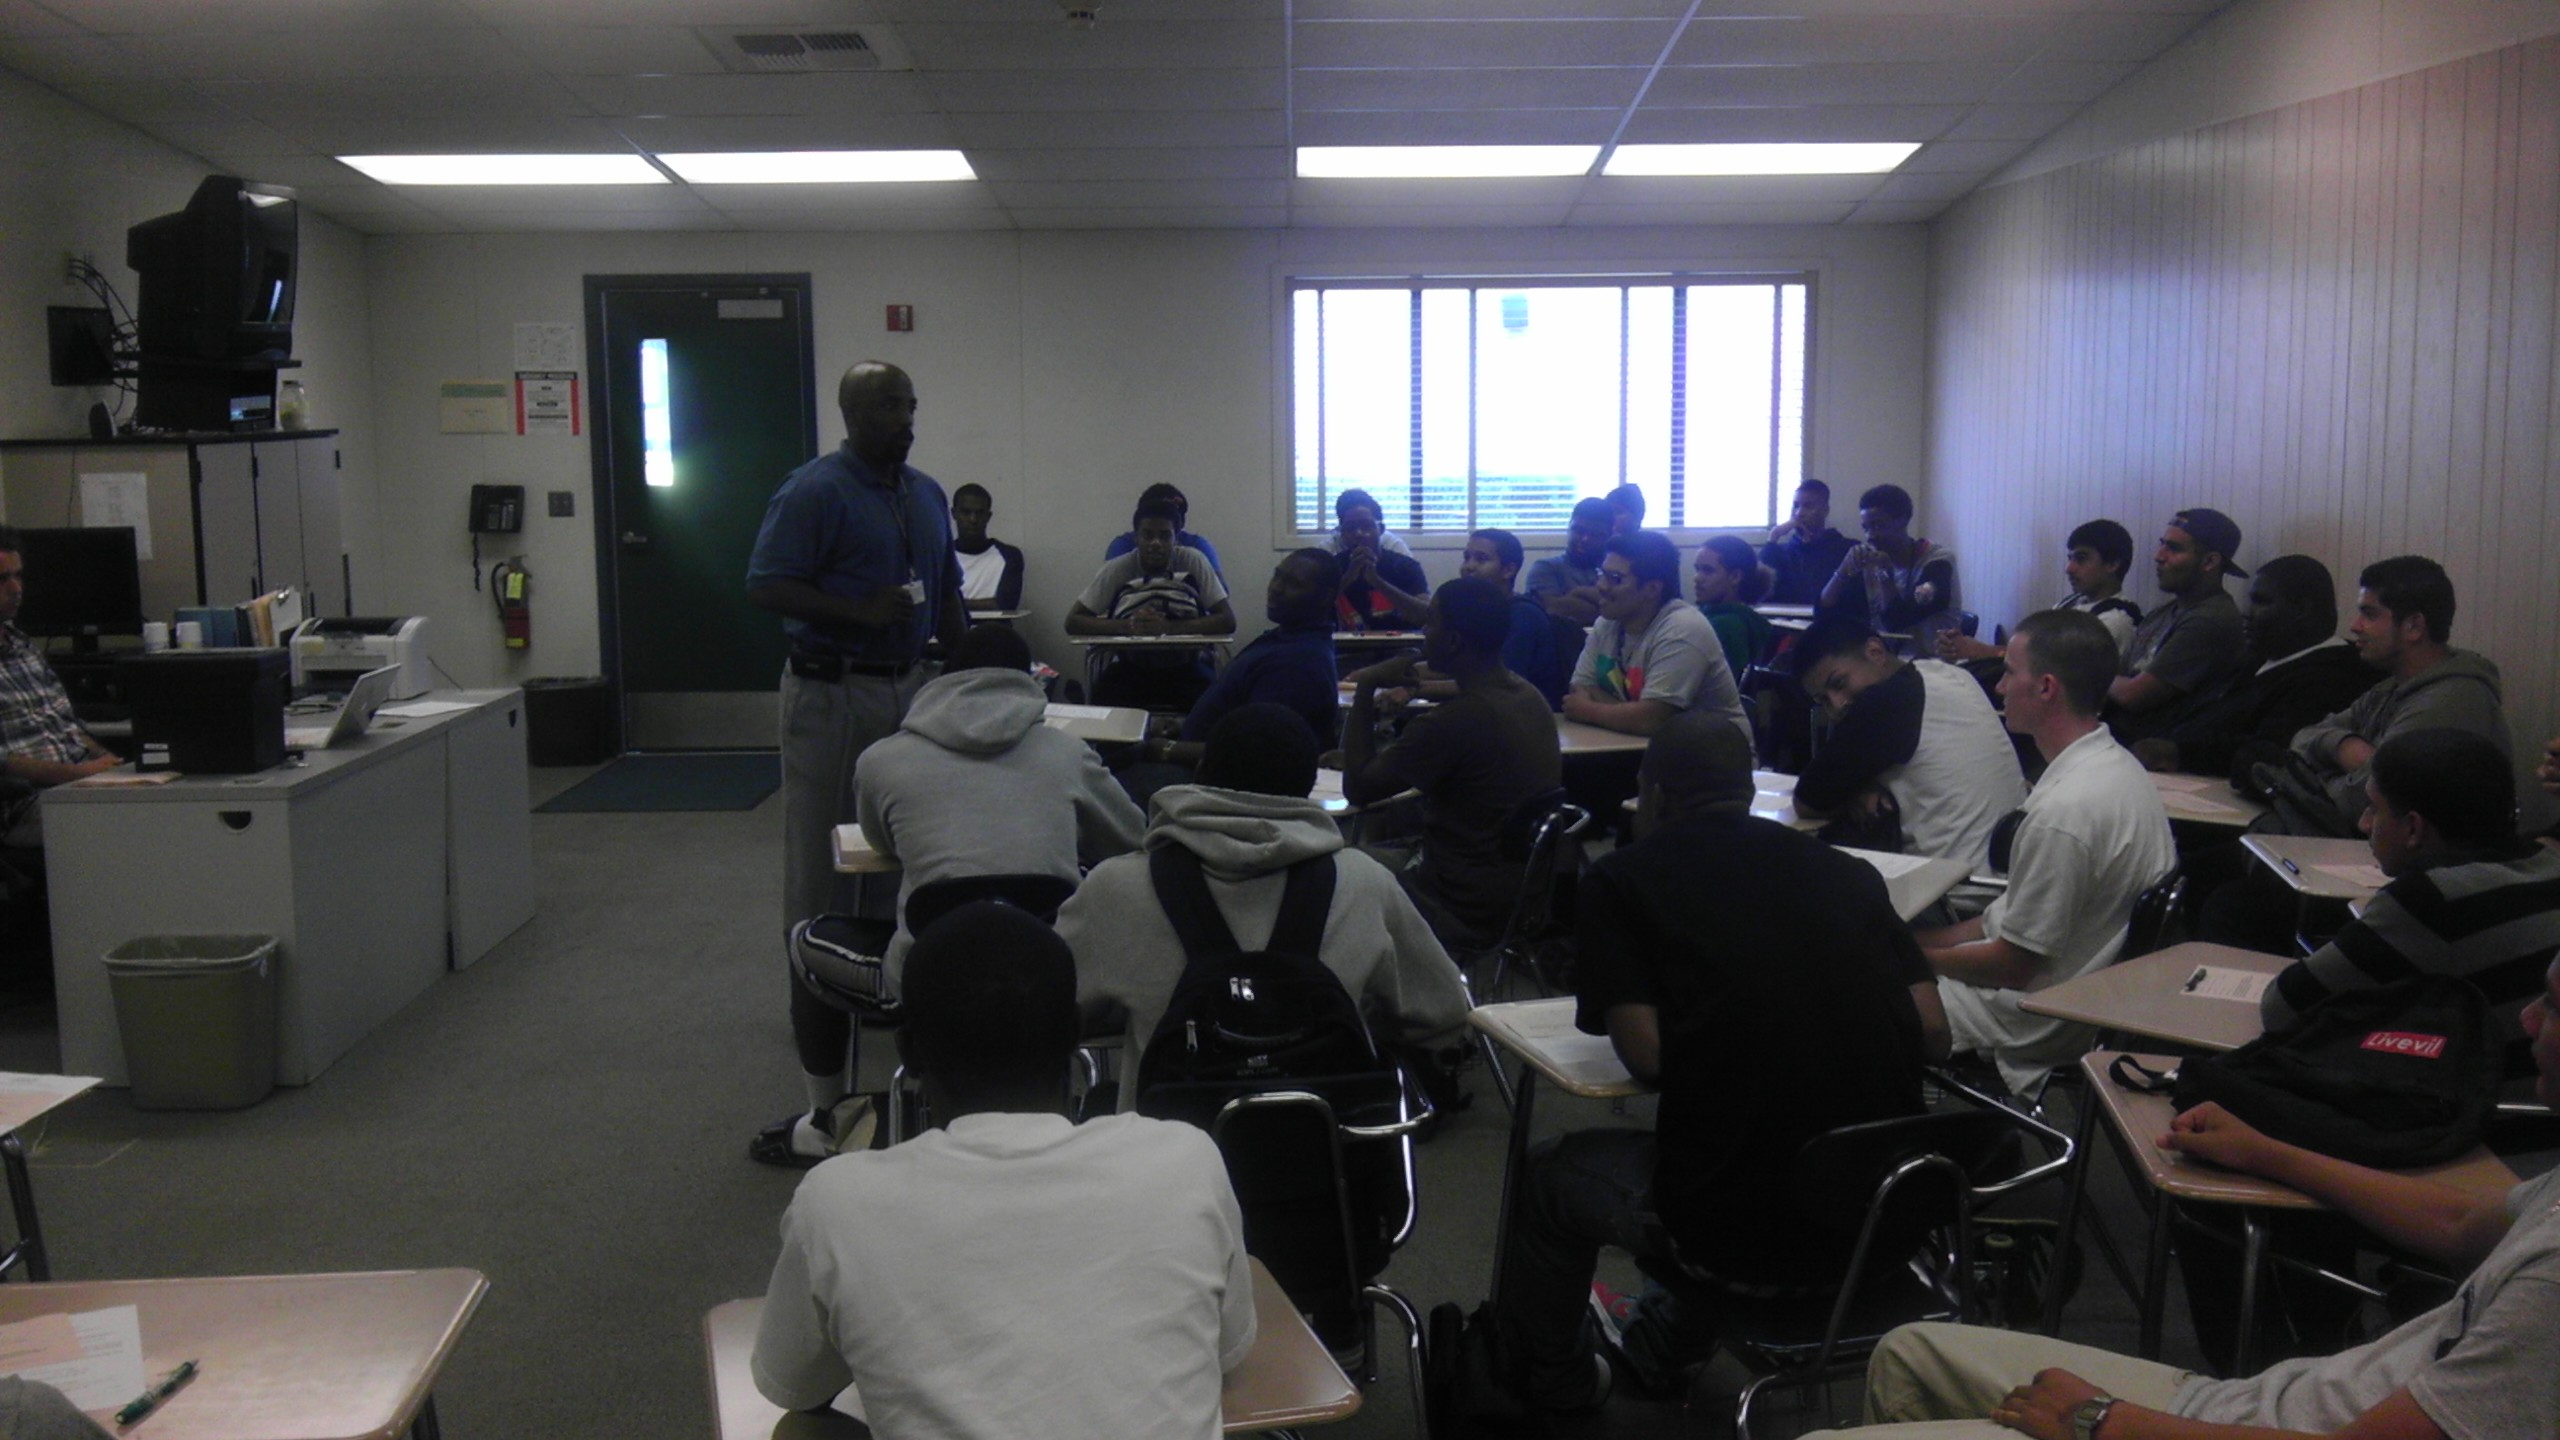 Mr. Parks and Chavez Enlightened Group about Issues in Our Community